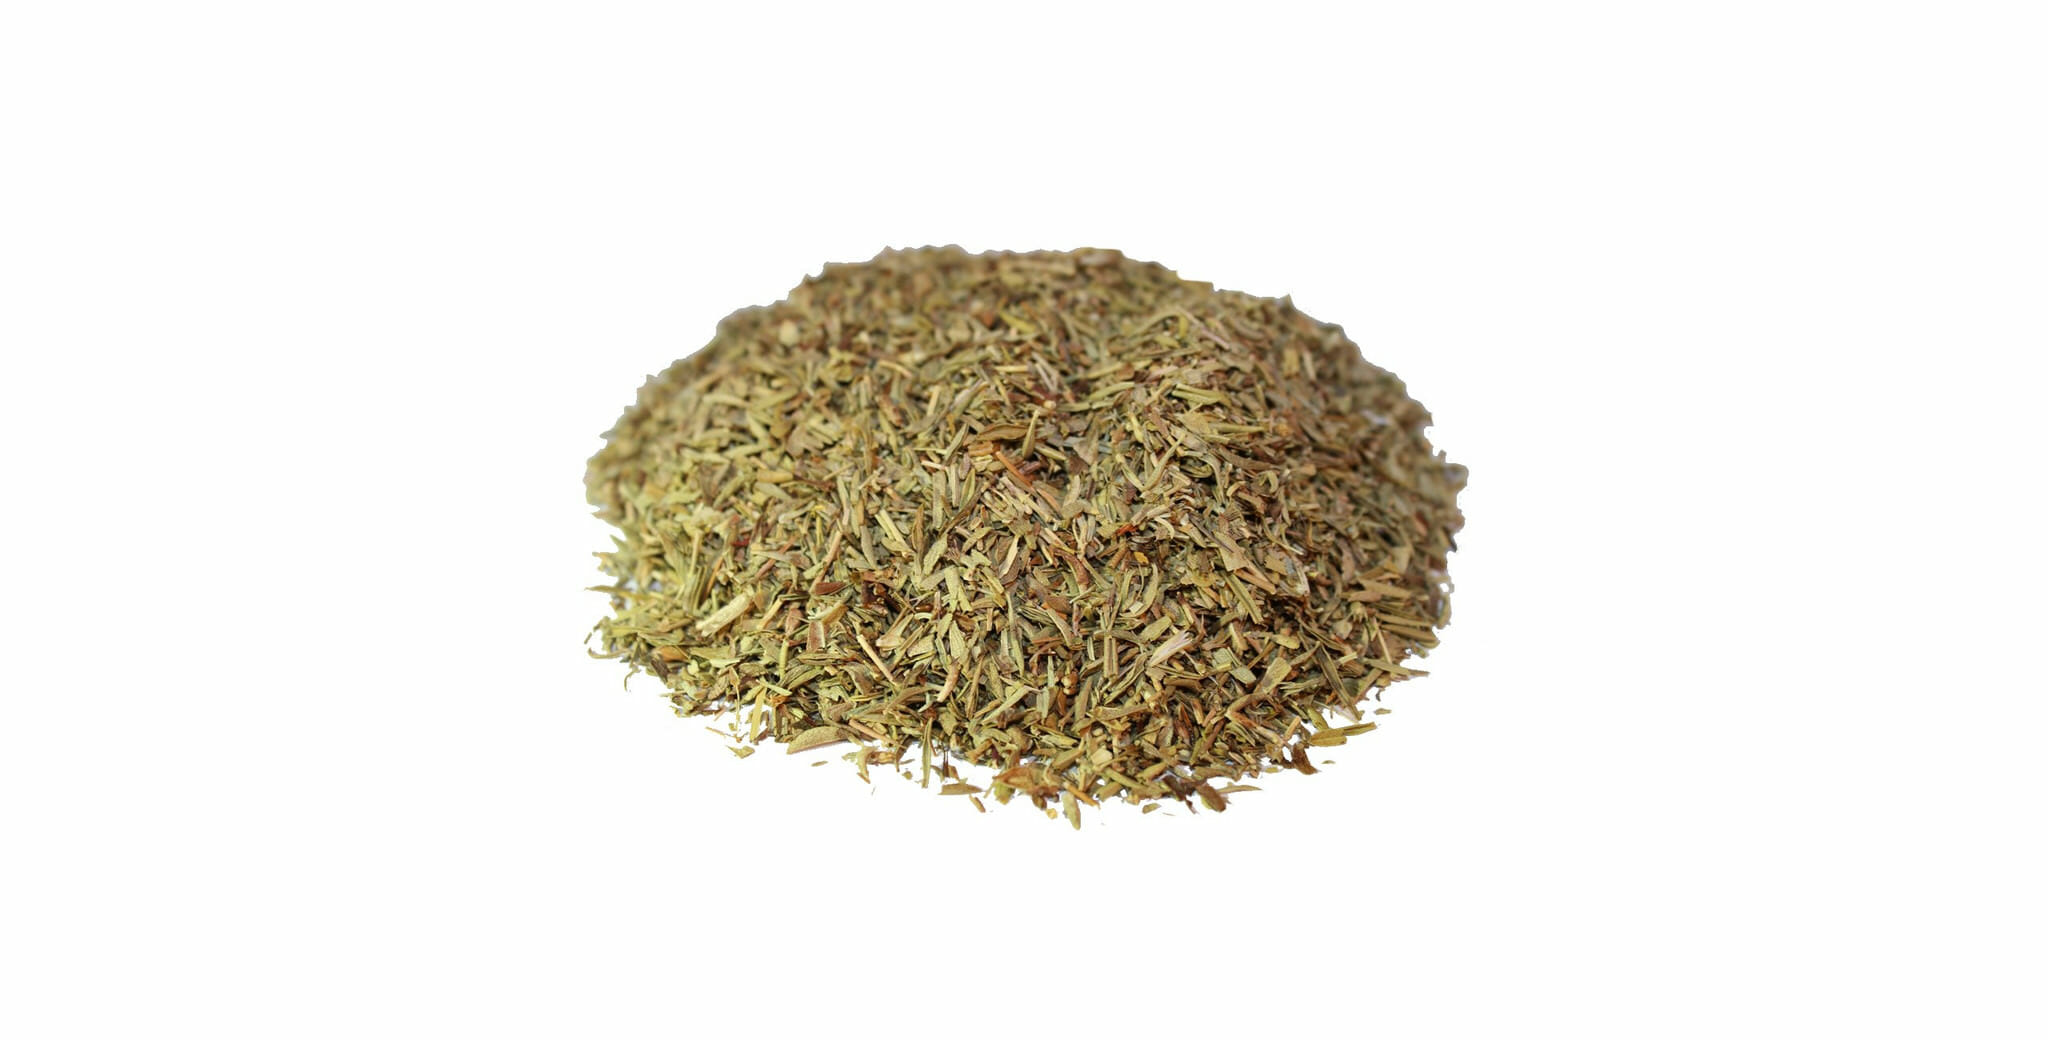 Savoury dried herb the spiceworks online wholesale